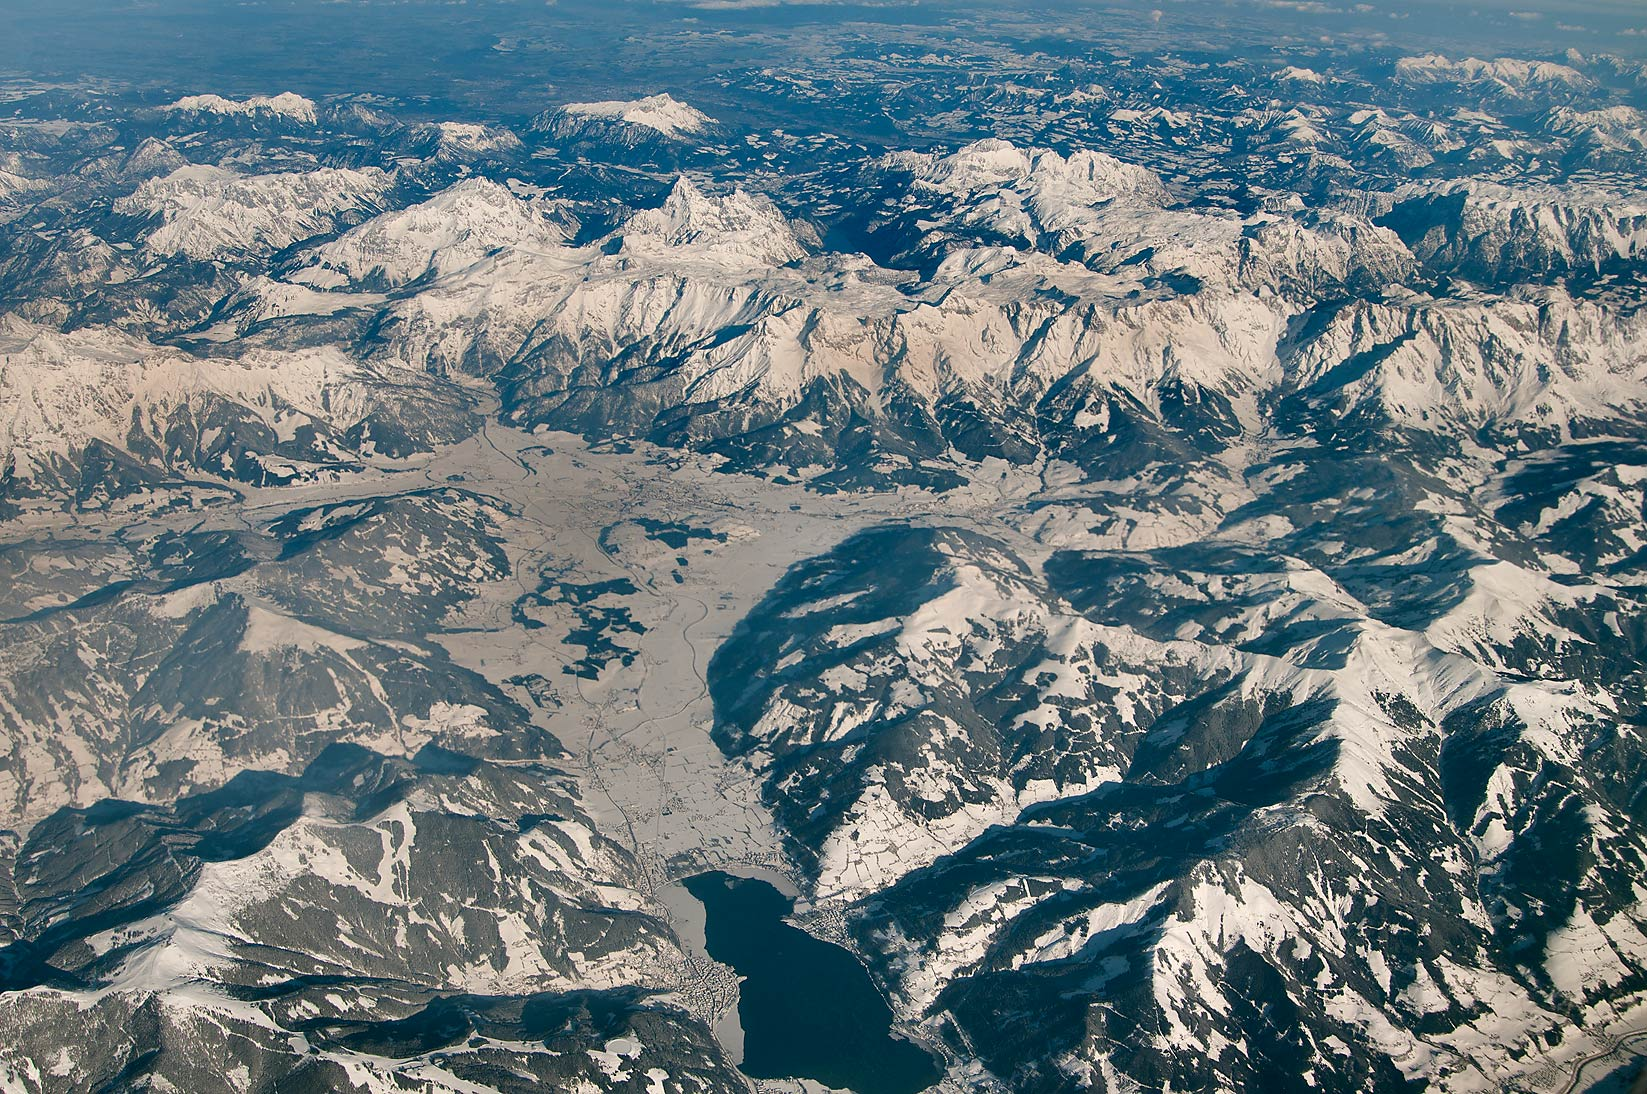 Saalfelden and snowy mountain peaks in the...window of a plane from Houston to Doha